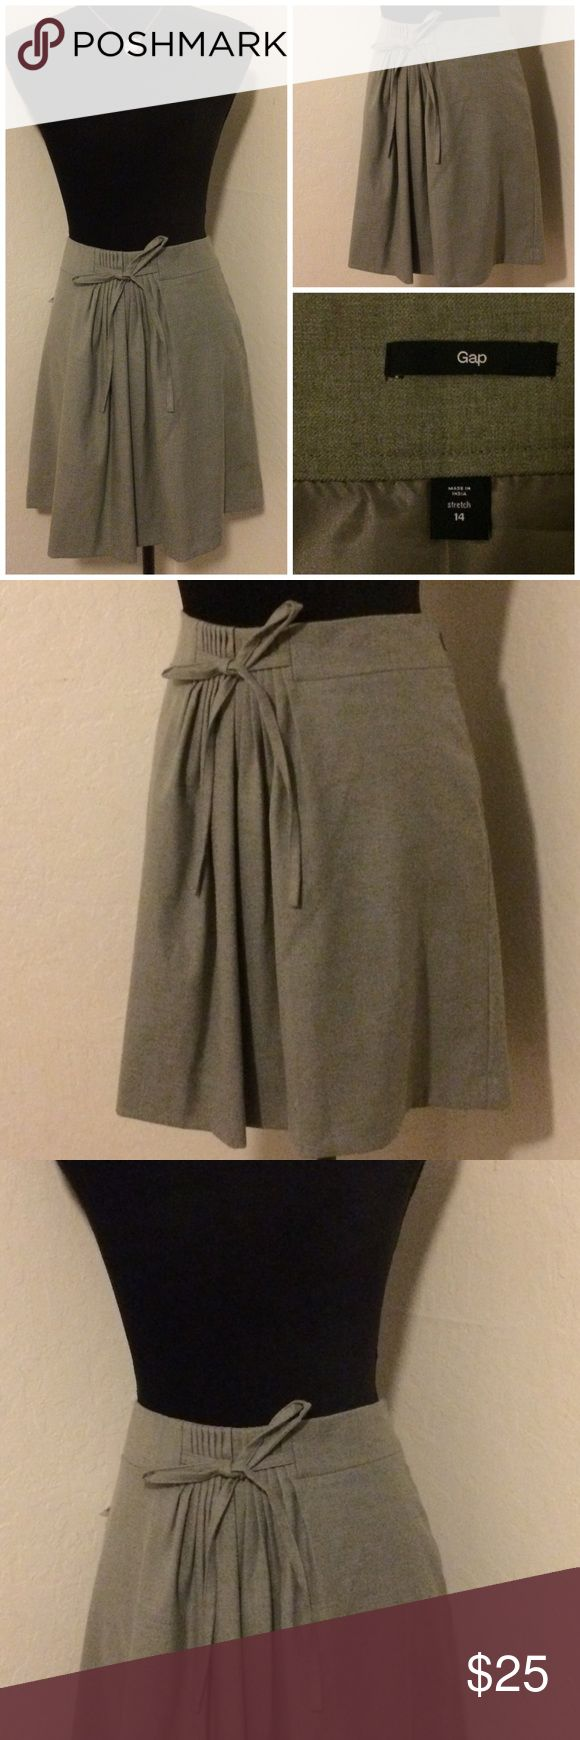 Gap Gray Mini Skirt For sale: NEW Women's Gap Gray Casual Work Line Tie Waist Detail Skirt, Sz 14. Skirt features some stretch for style and comfort and invisible side zipper. Faux adjustable tie front detail.  Interested? Like, share, bundle, buy! Banana Republic Skirts Mini